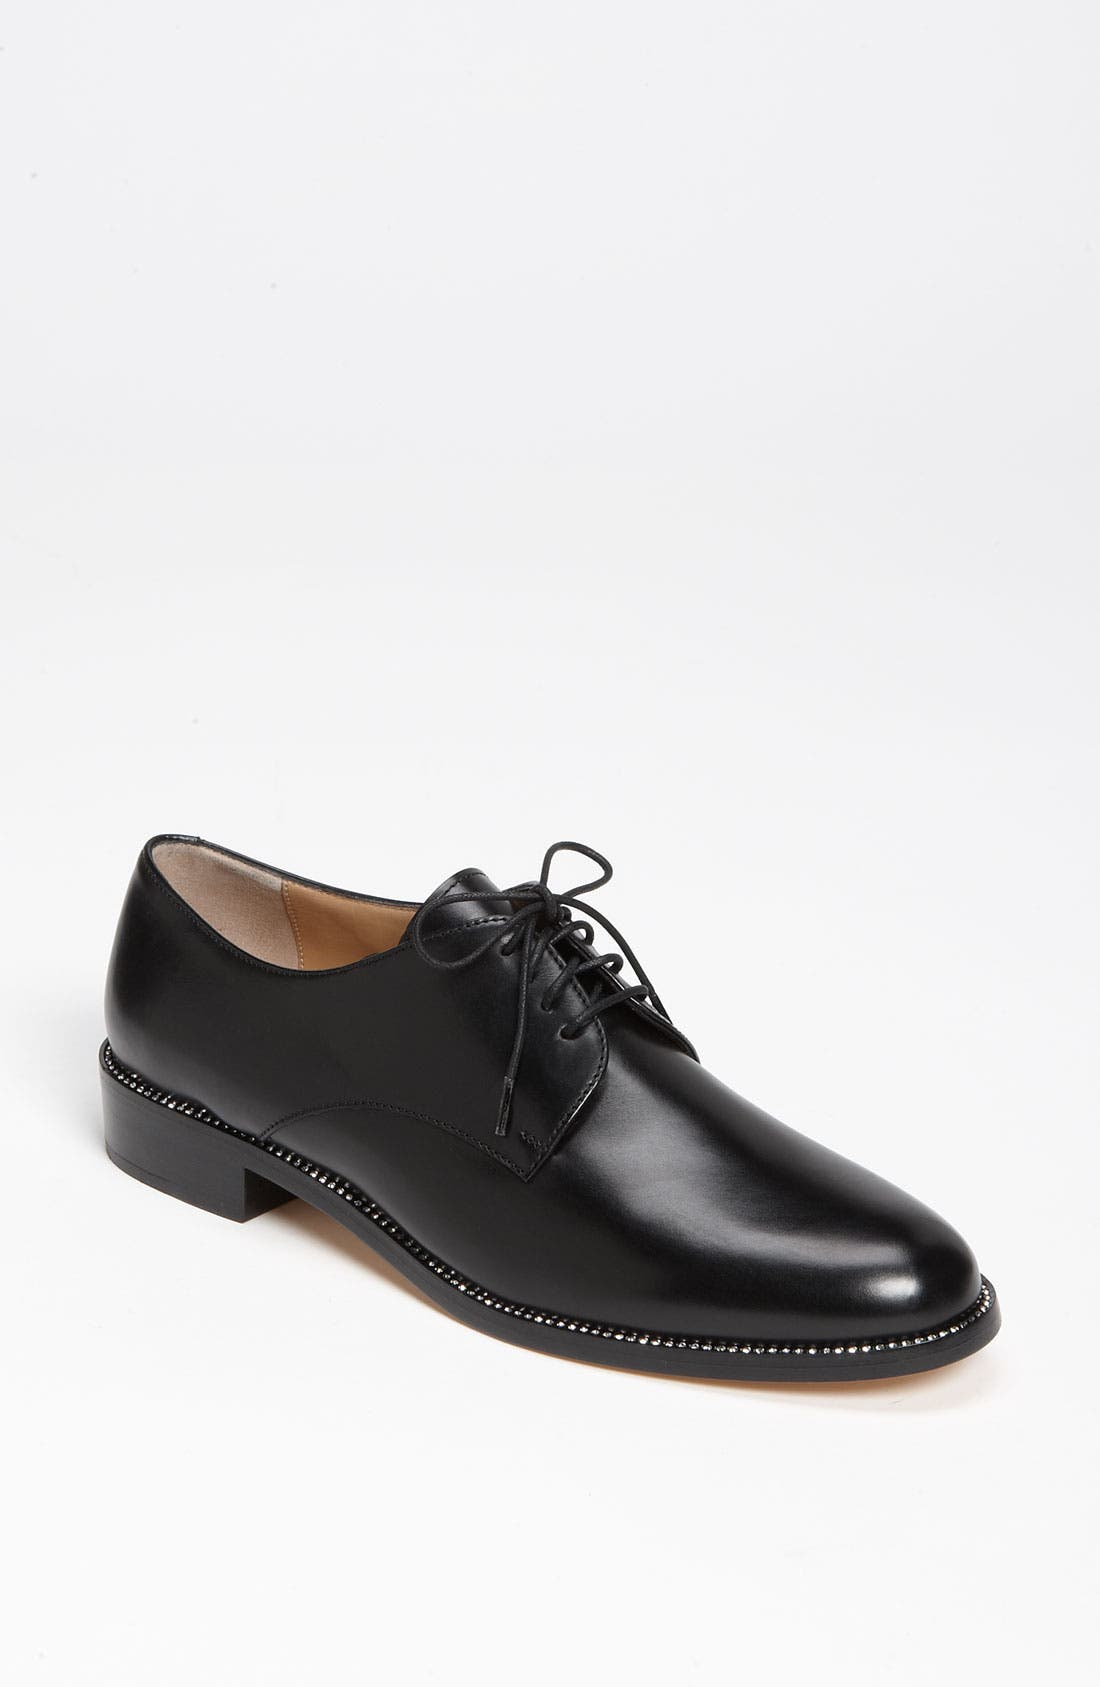 Main Image - Salvatore Ferragamo 'Tandy' Oxford